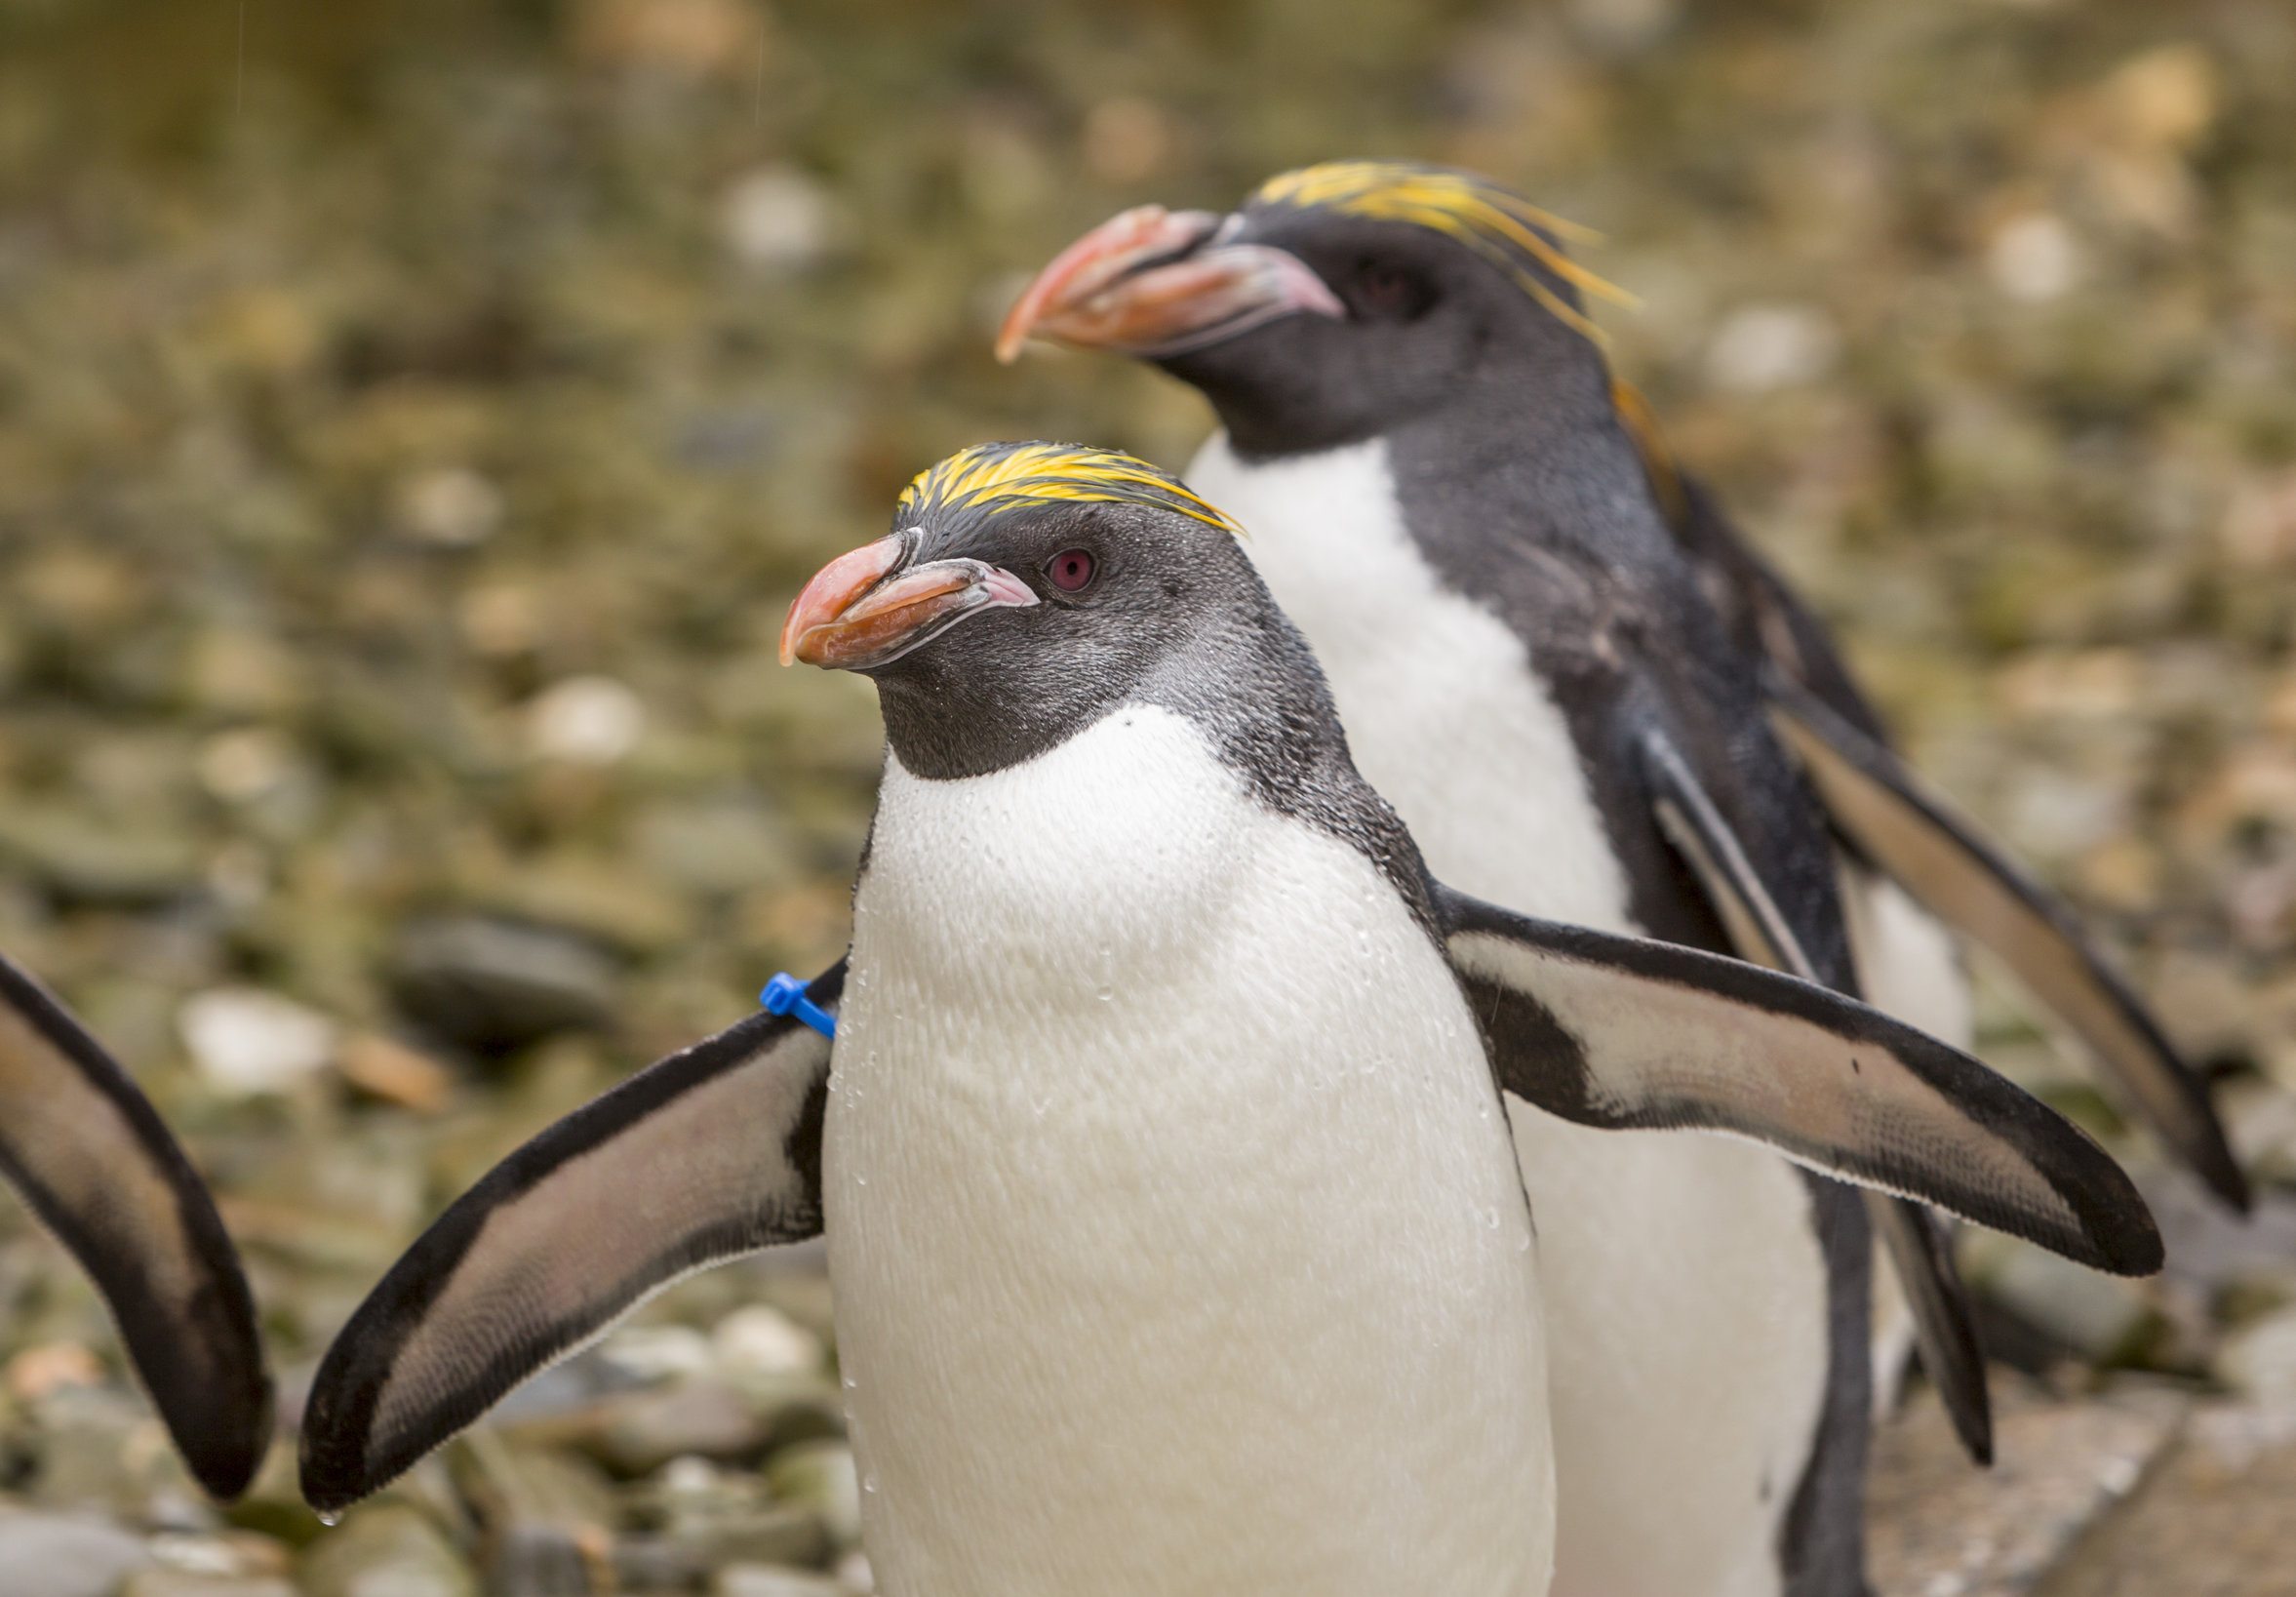 Folly Farm's macaroni penguins